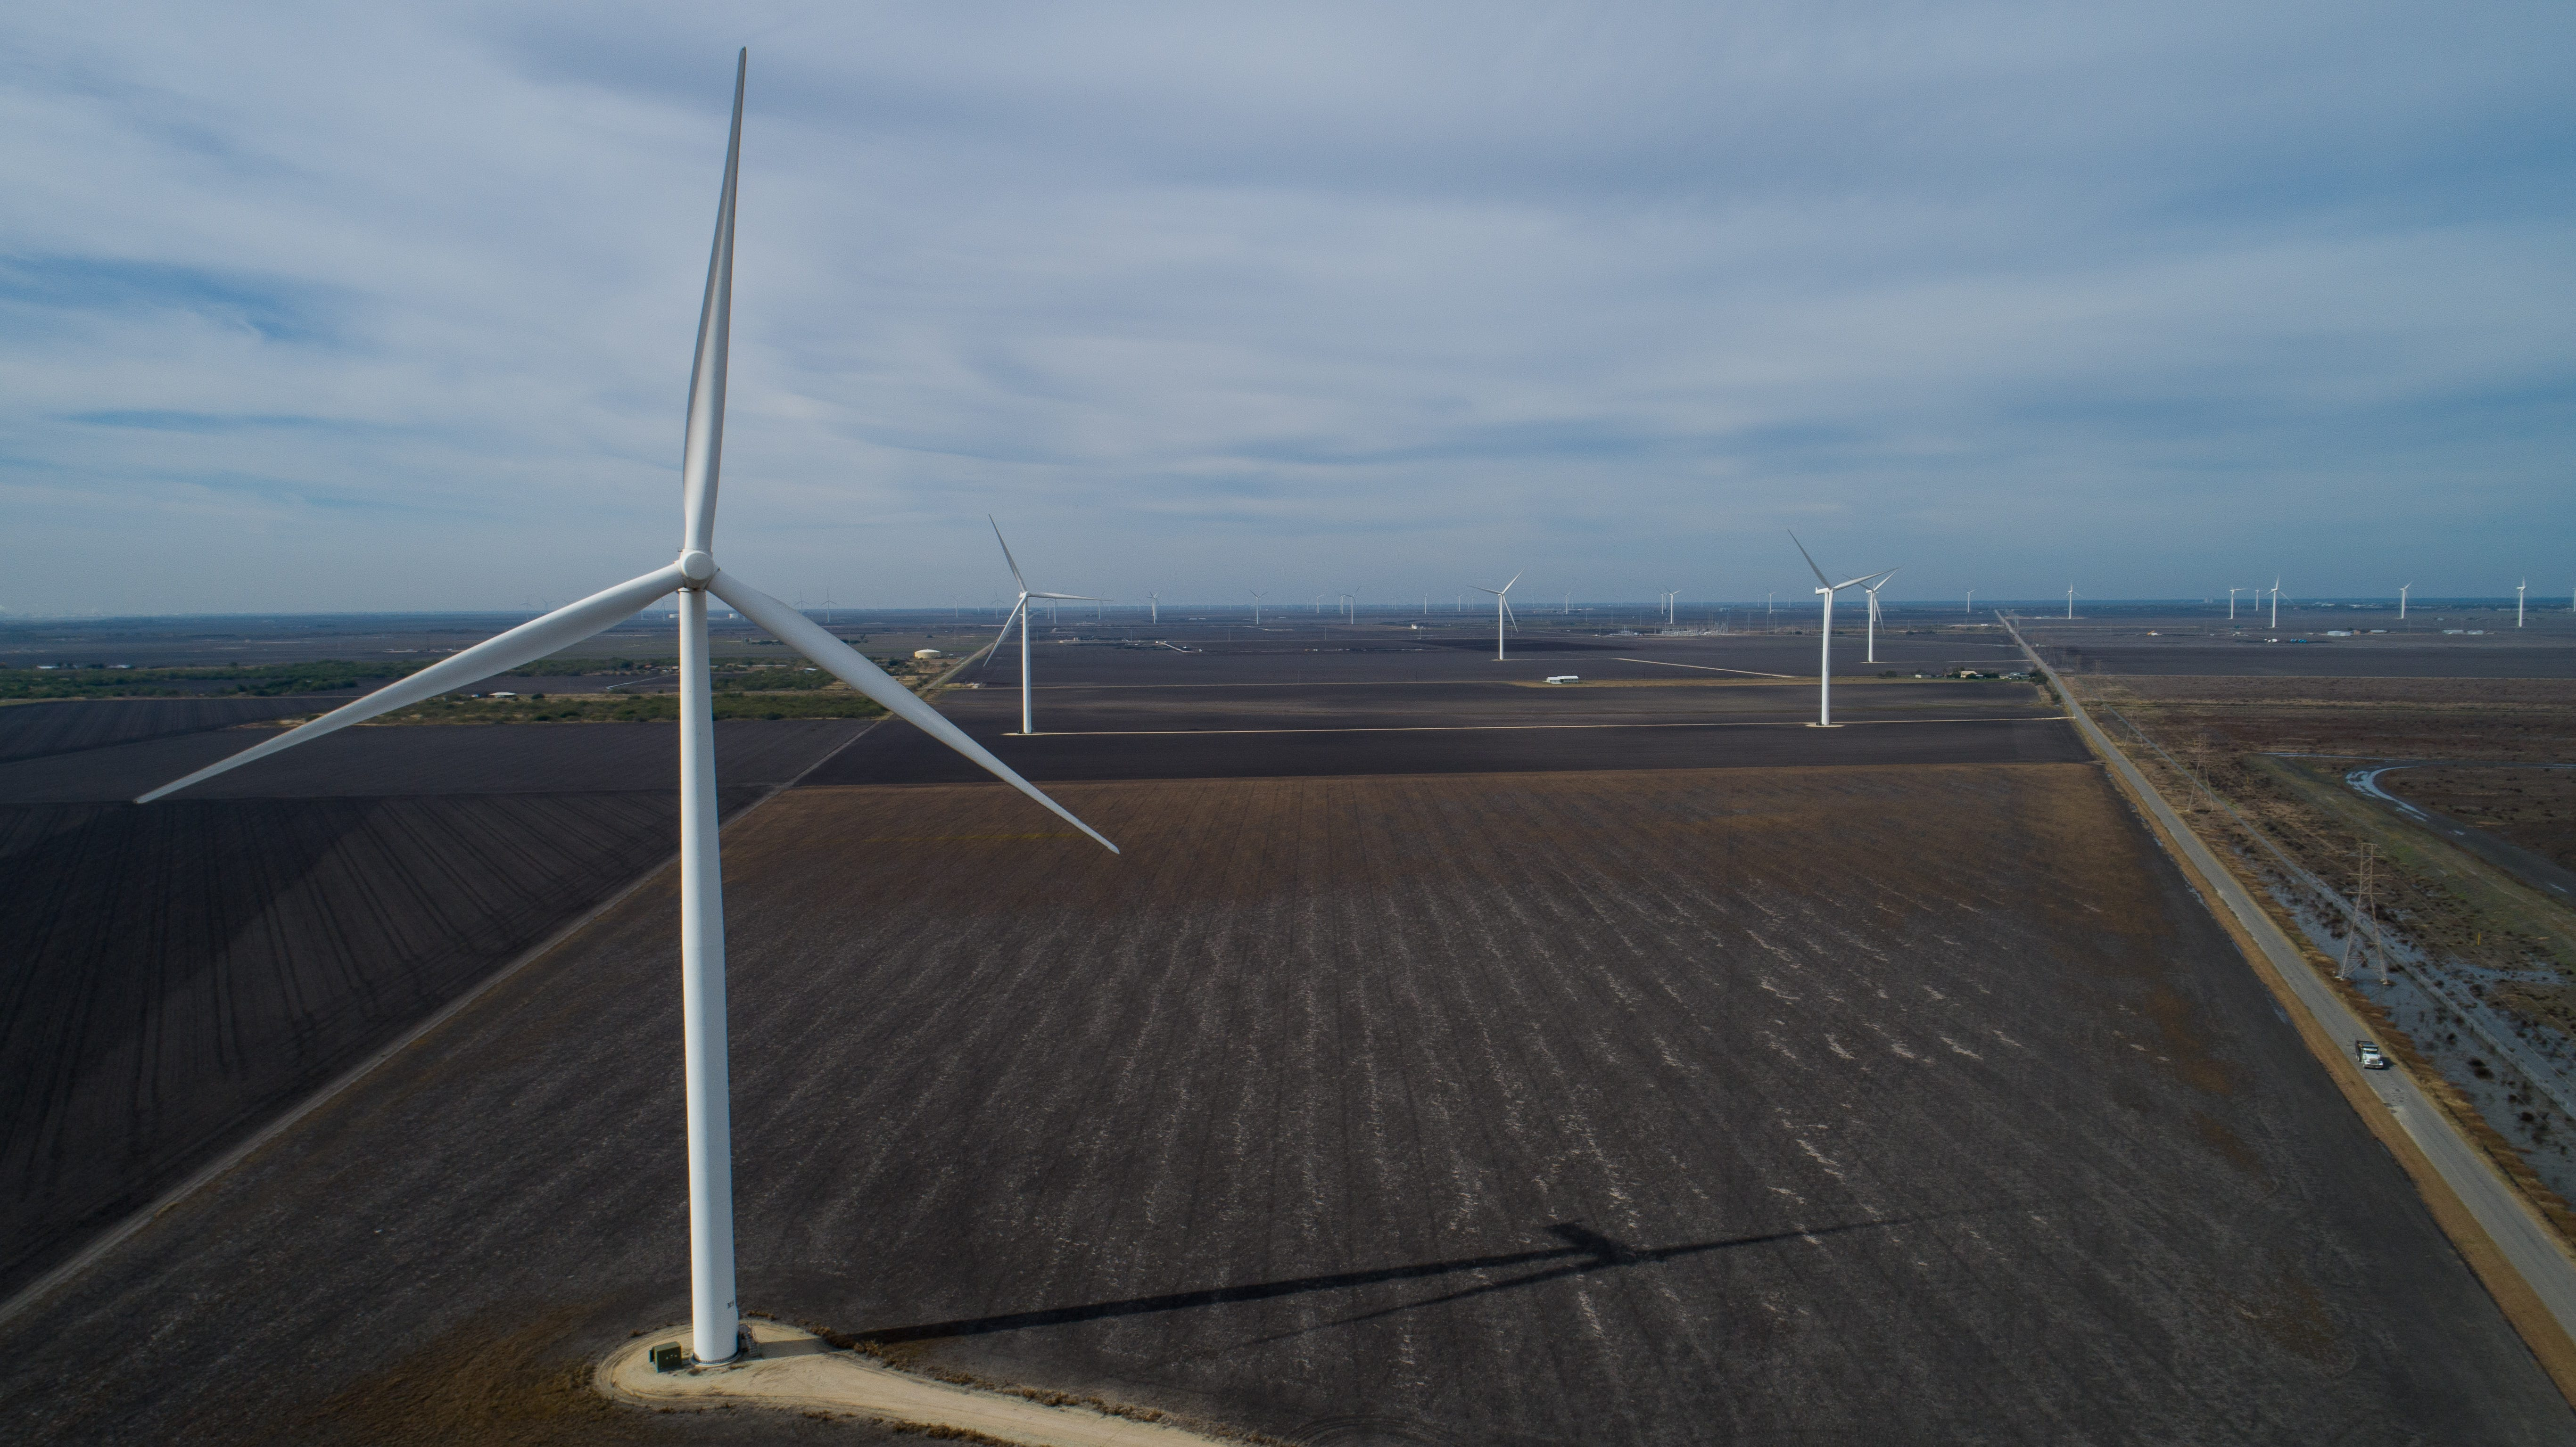 Will 2019 be the year of the turbine? Wind energy is surging